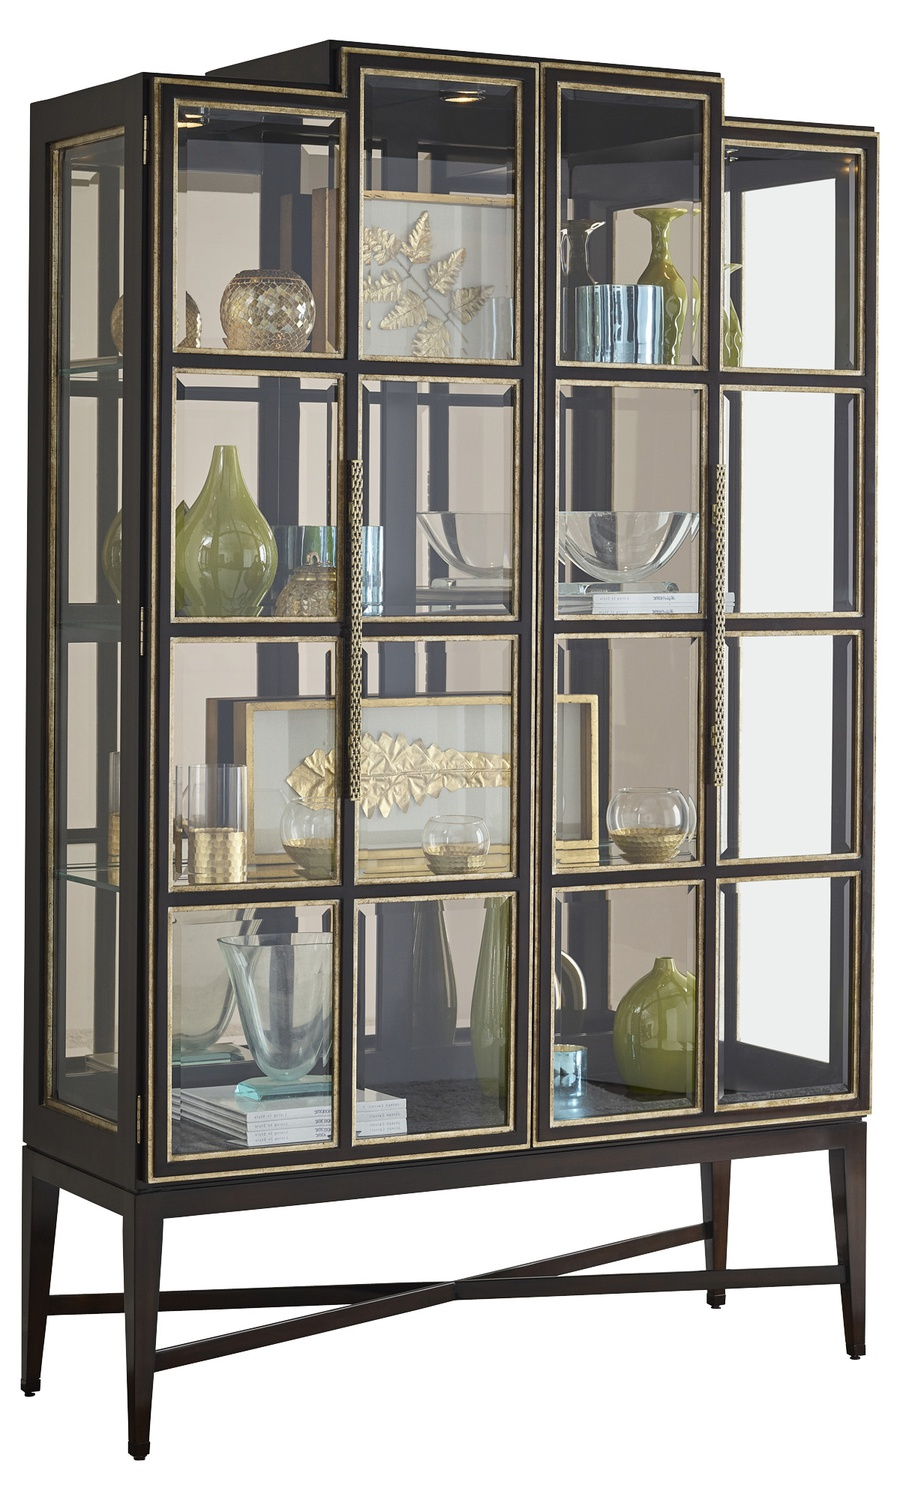 Maison Display Cabinet shown with:Latte finish on topCashmere Silver finish on baseAged Silver Cloud finish trimLatte contrast interior finishPlatinum Eglomise Mirror backAntique Nickel hardware